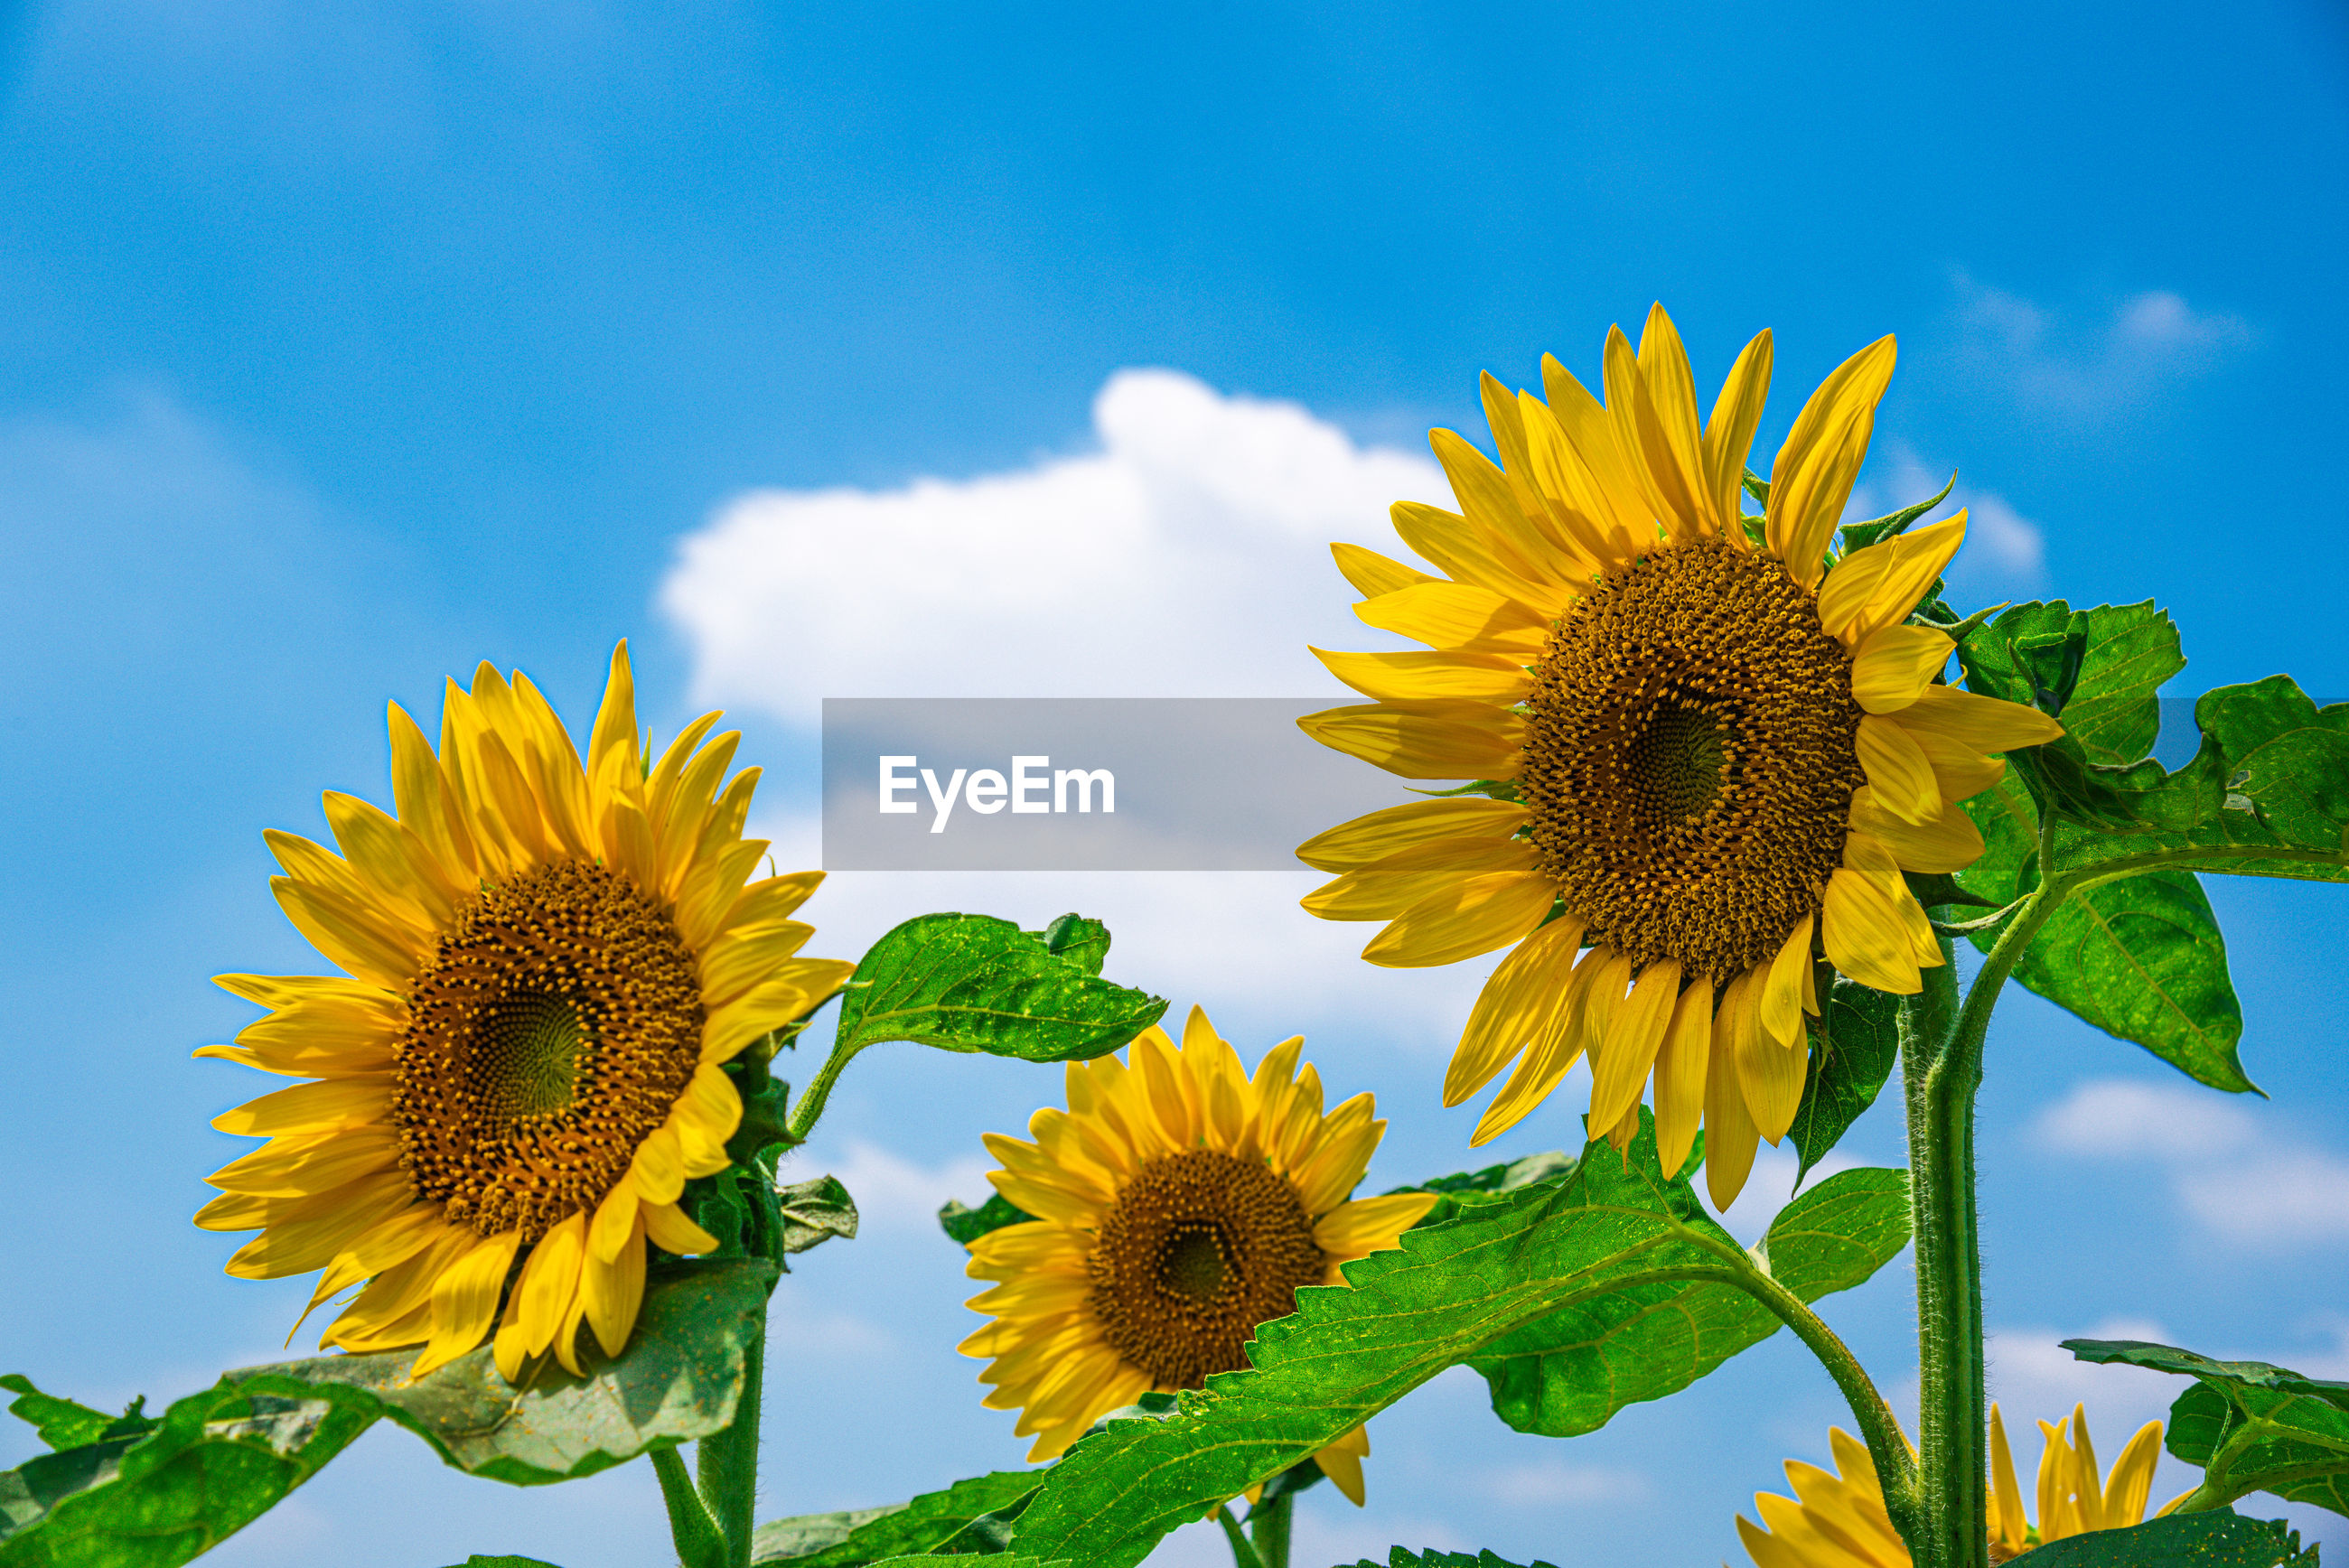 CLOSE-UP OF SUNFLOWER AGAINST YELLOW SKY